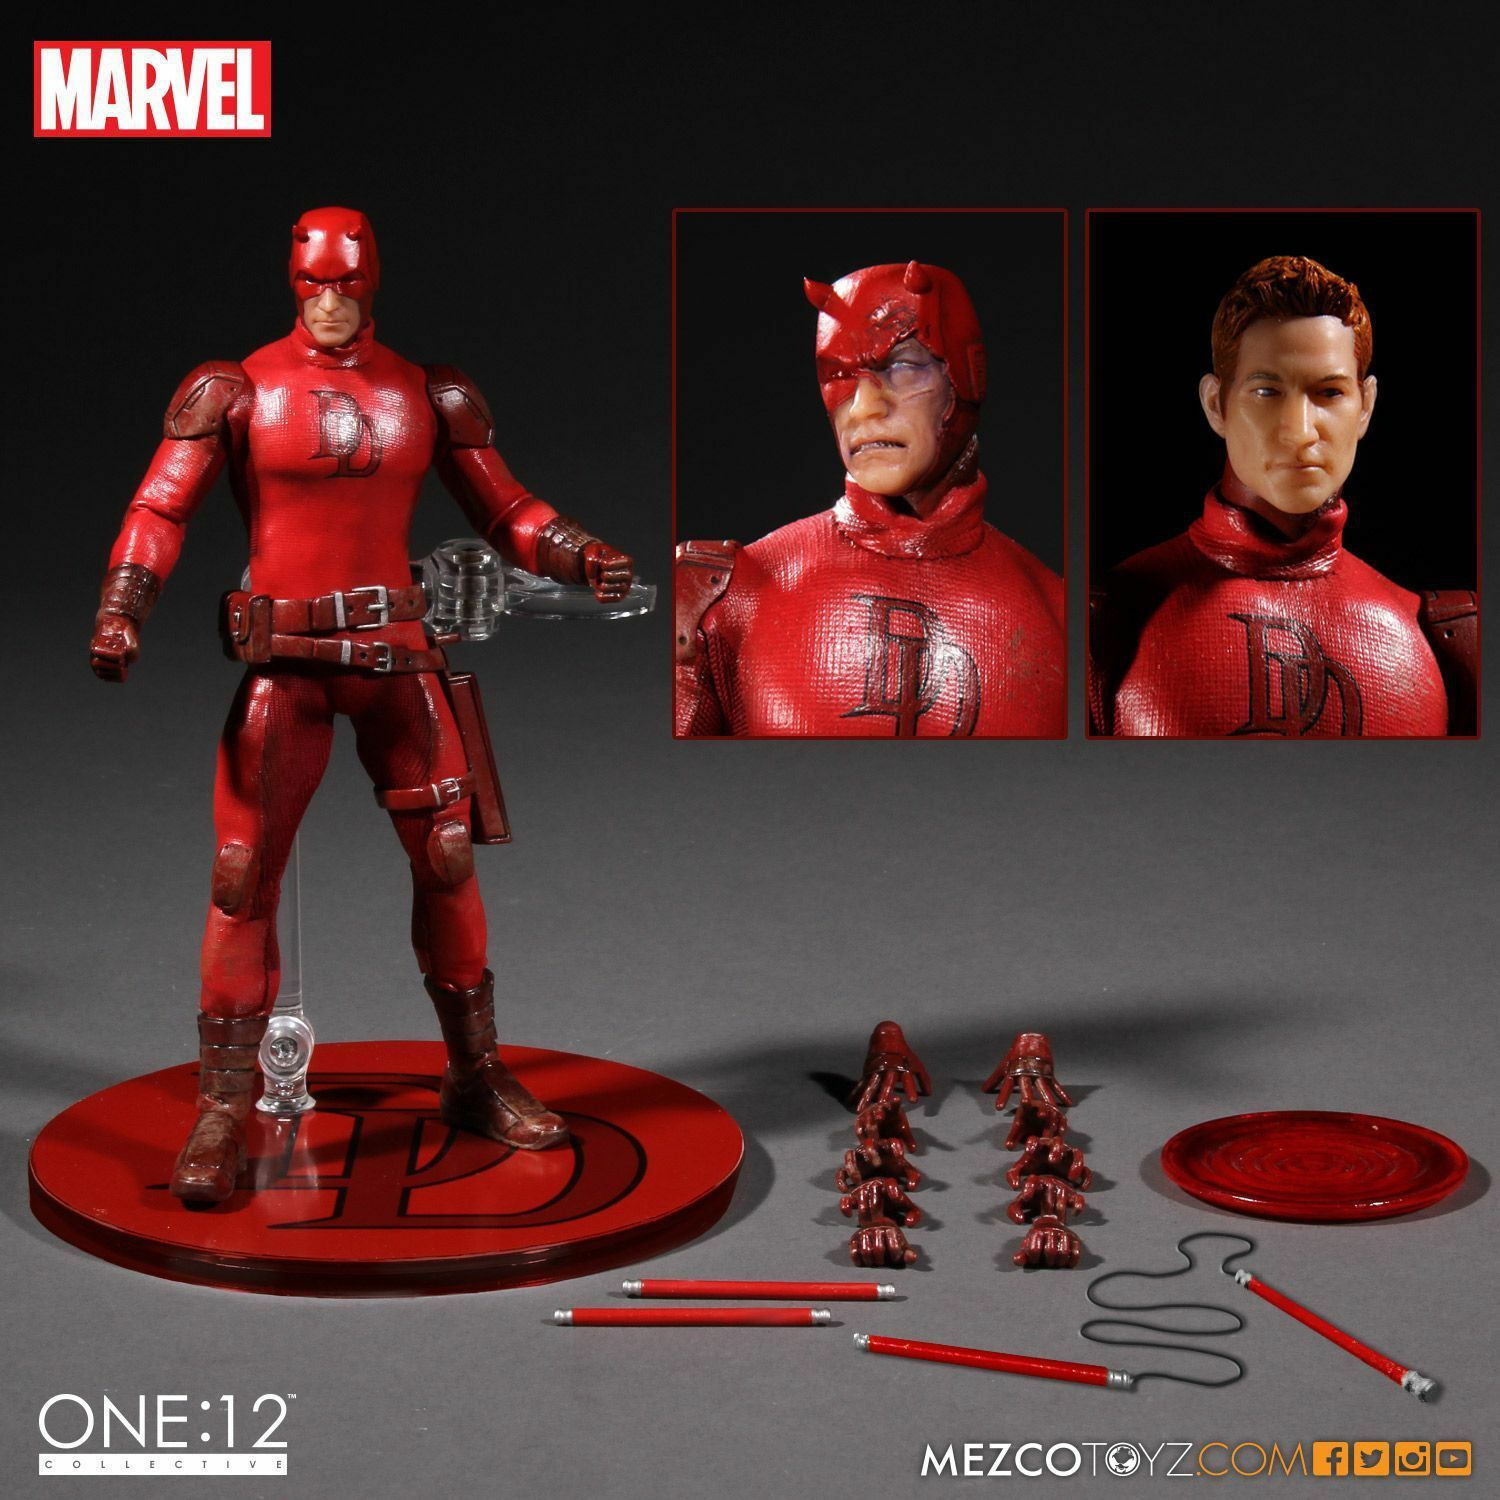 MEZCO MARVEL LEGENDS MISB DAREDEVIL 6  FIGURE ONE 12 COLLECTIVE